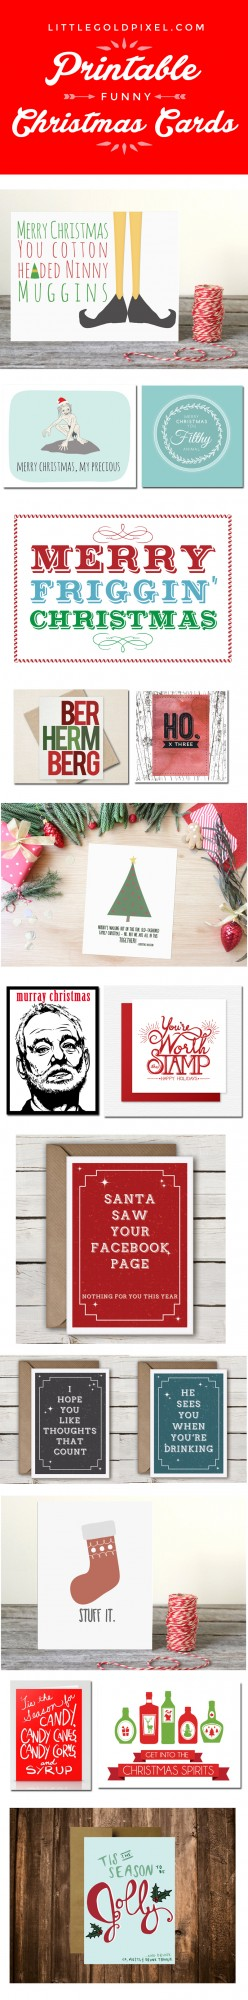 My Last-Minute Christmas Card Solution •littlegoldpixel.com • Funny, cute printable cards from Etsy designers